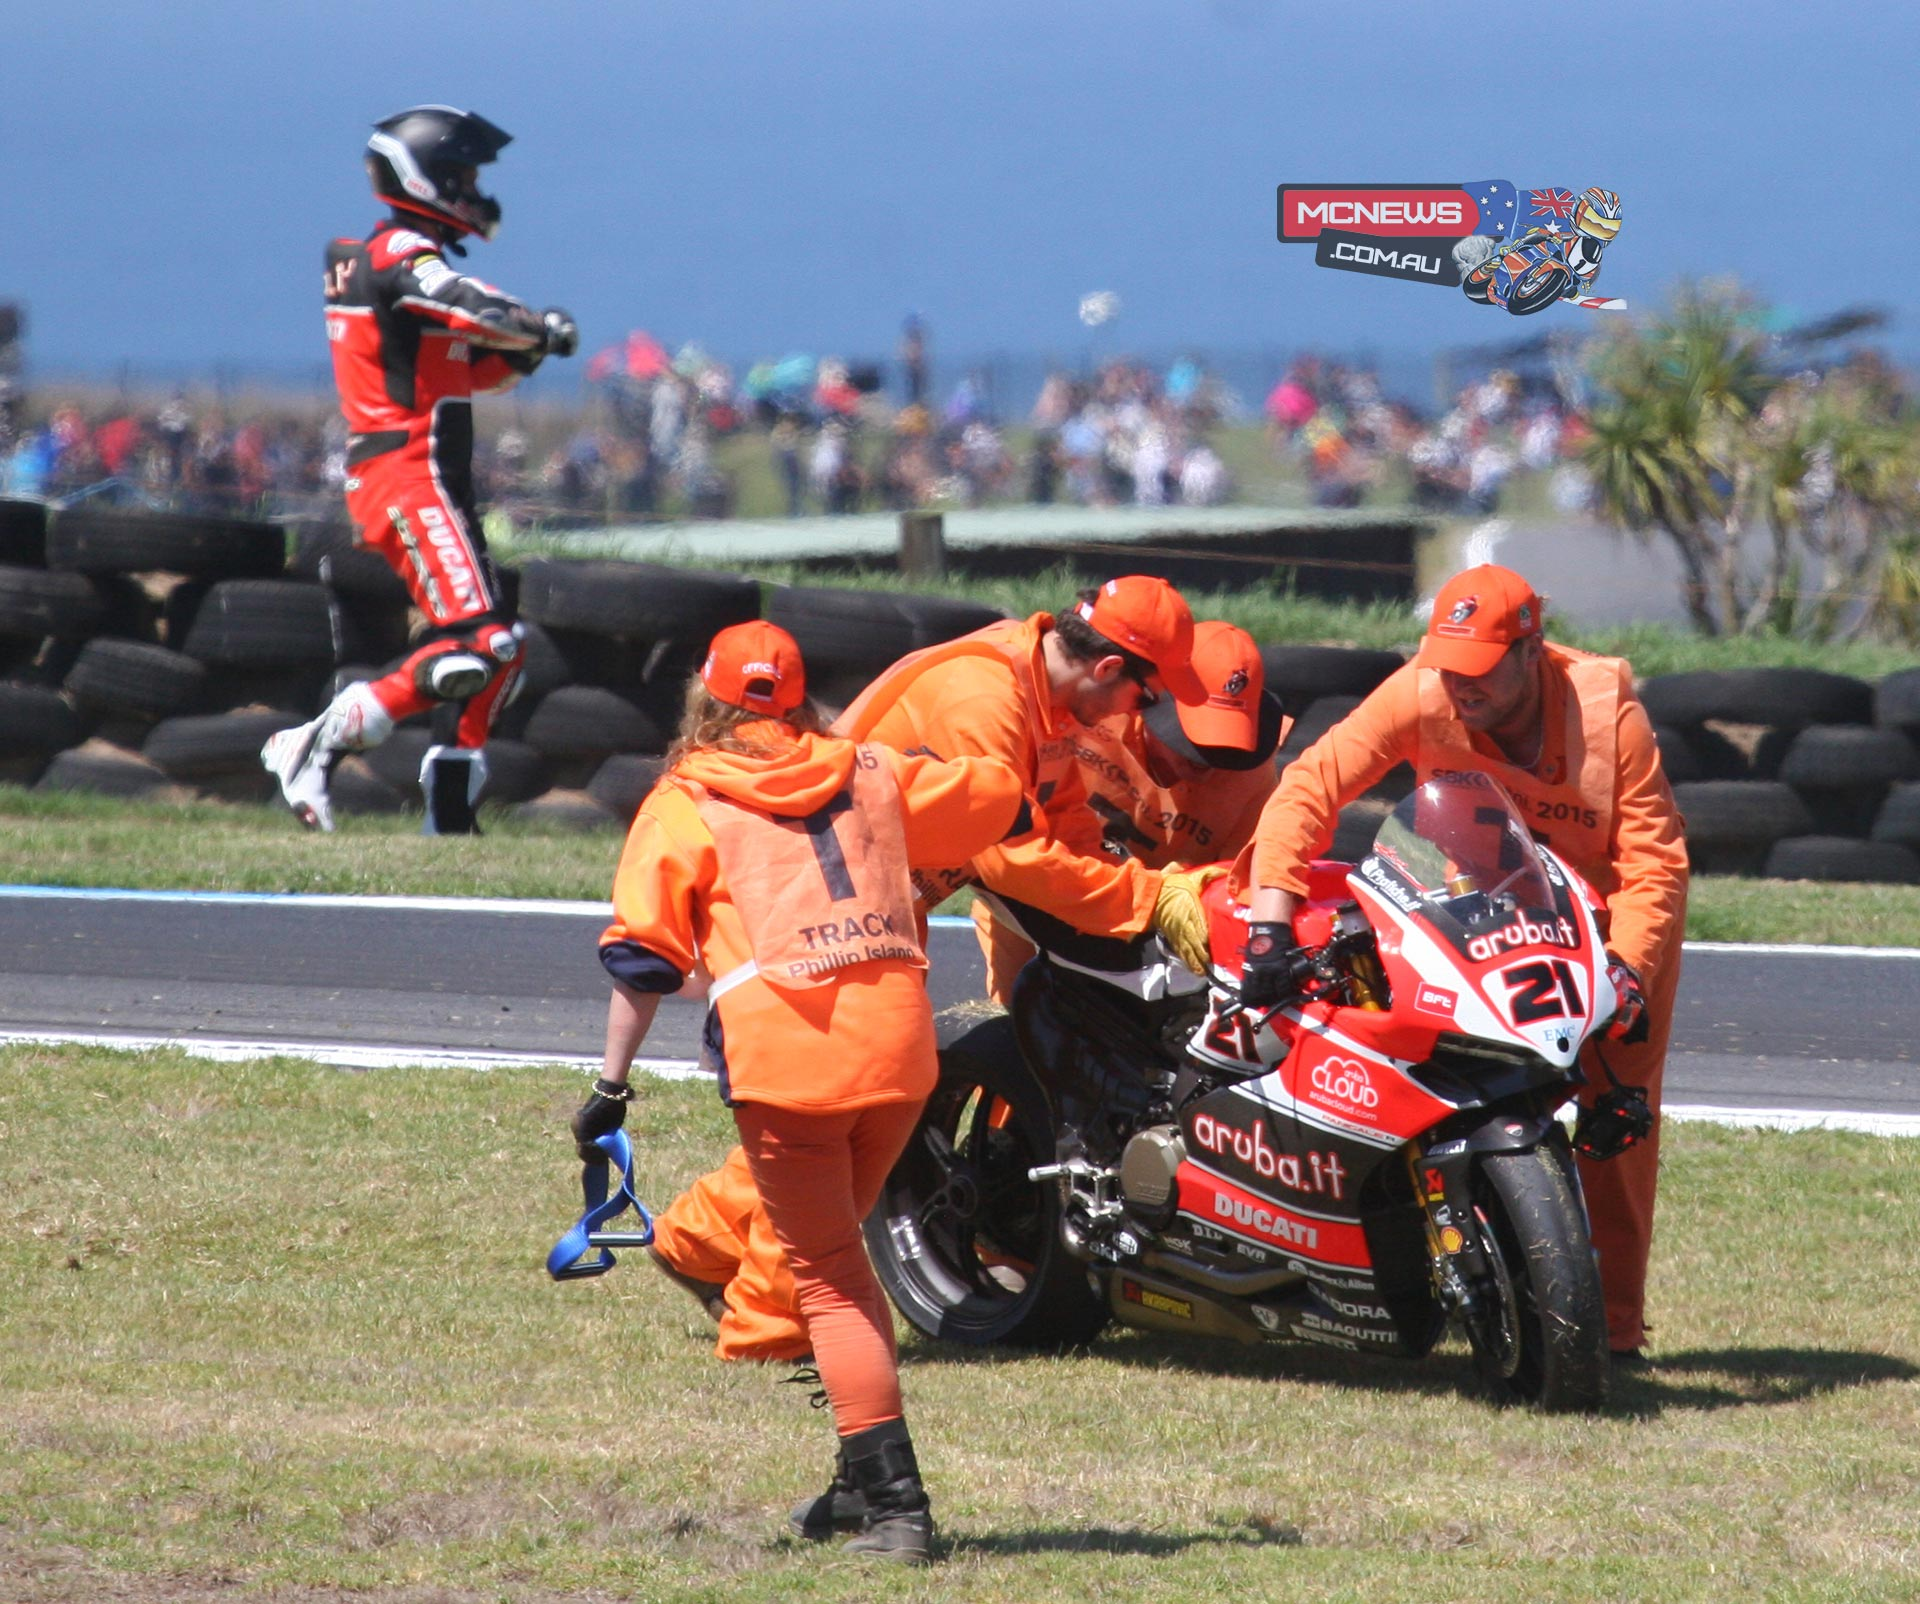 Bayliss was 12th quickest in the session but in the dying minutes suffered a huge high-side crash at turn nine